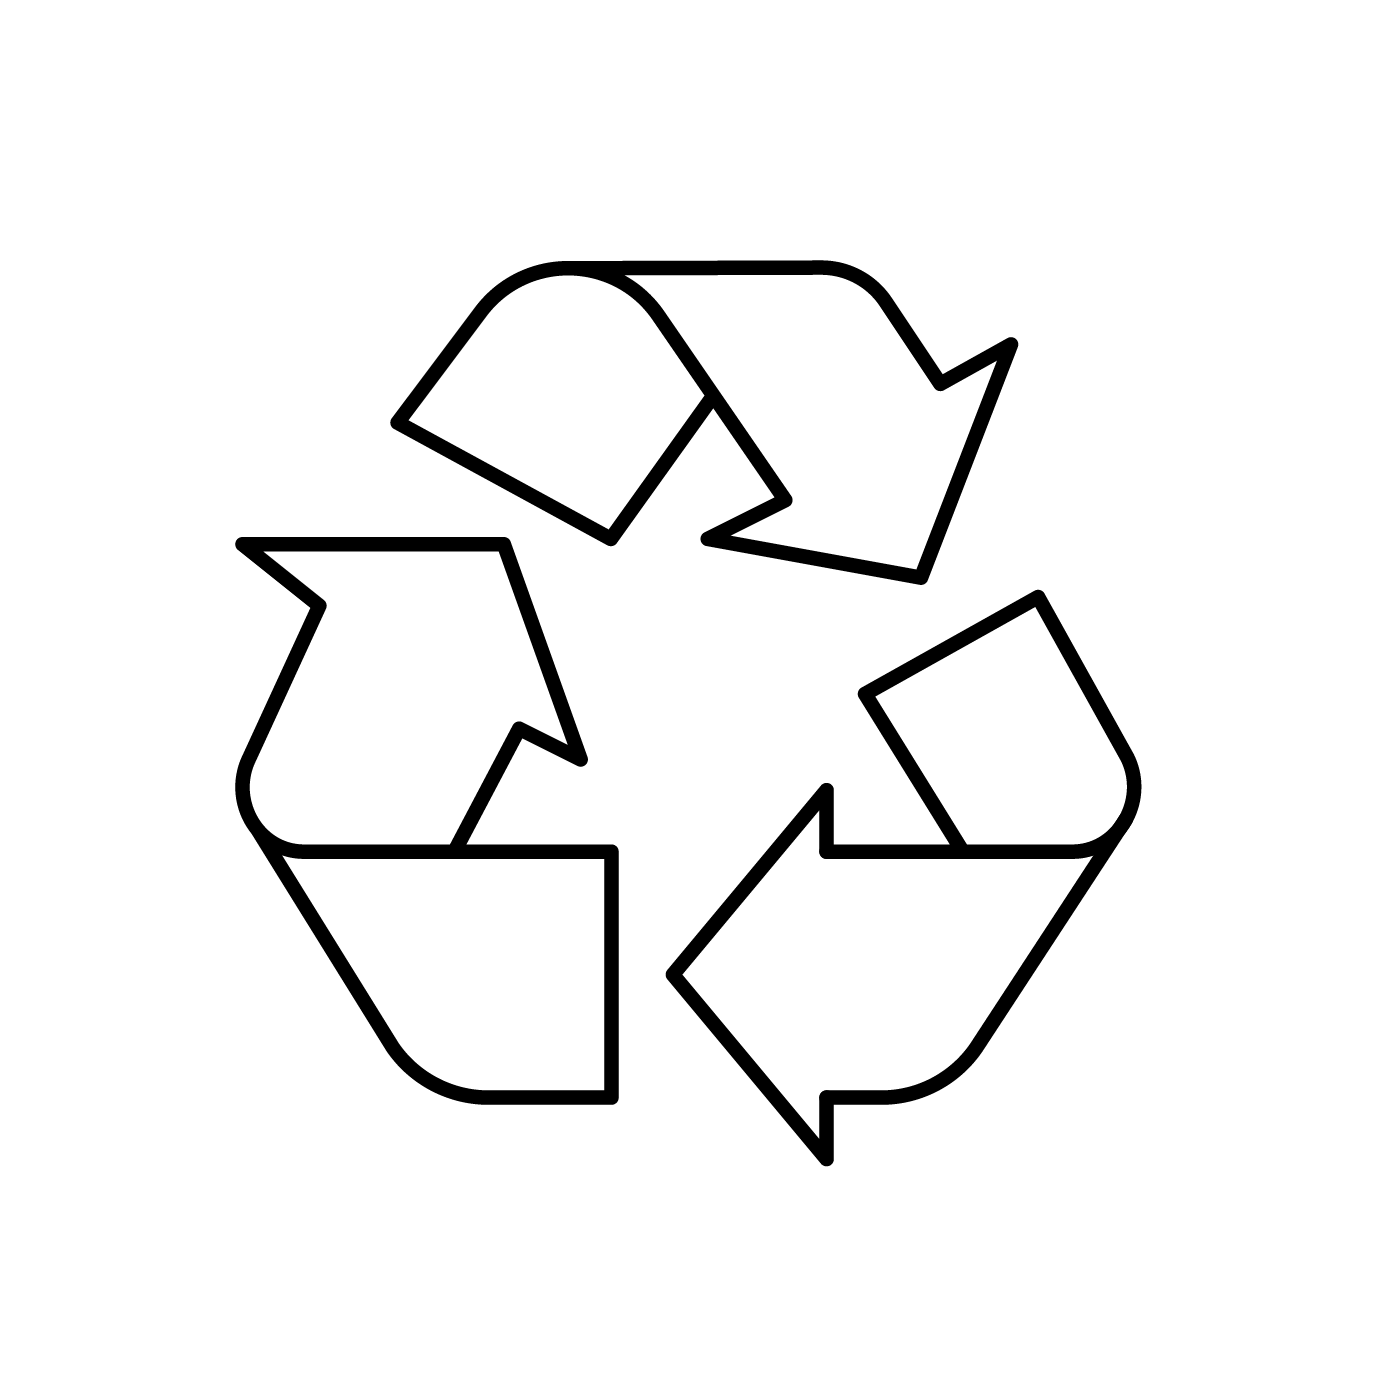 CS_Icon_Recycling